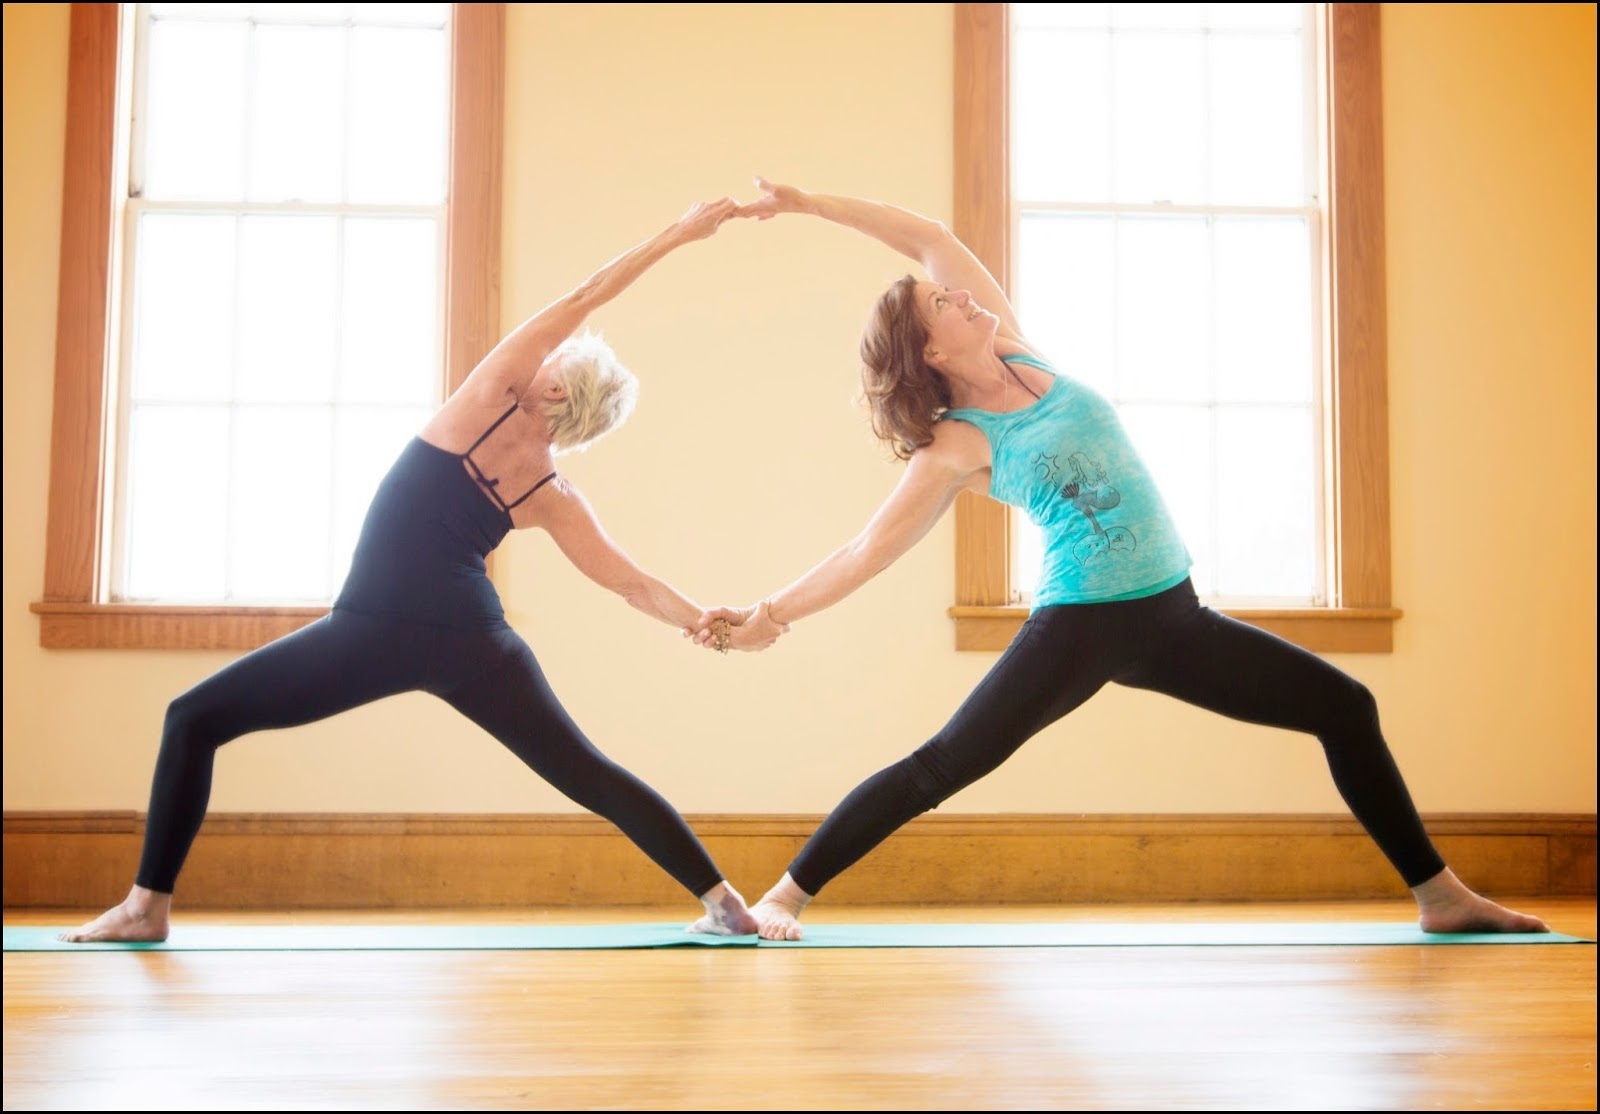 2 Person Yoga Poses For Beginners